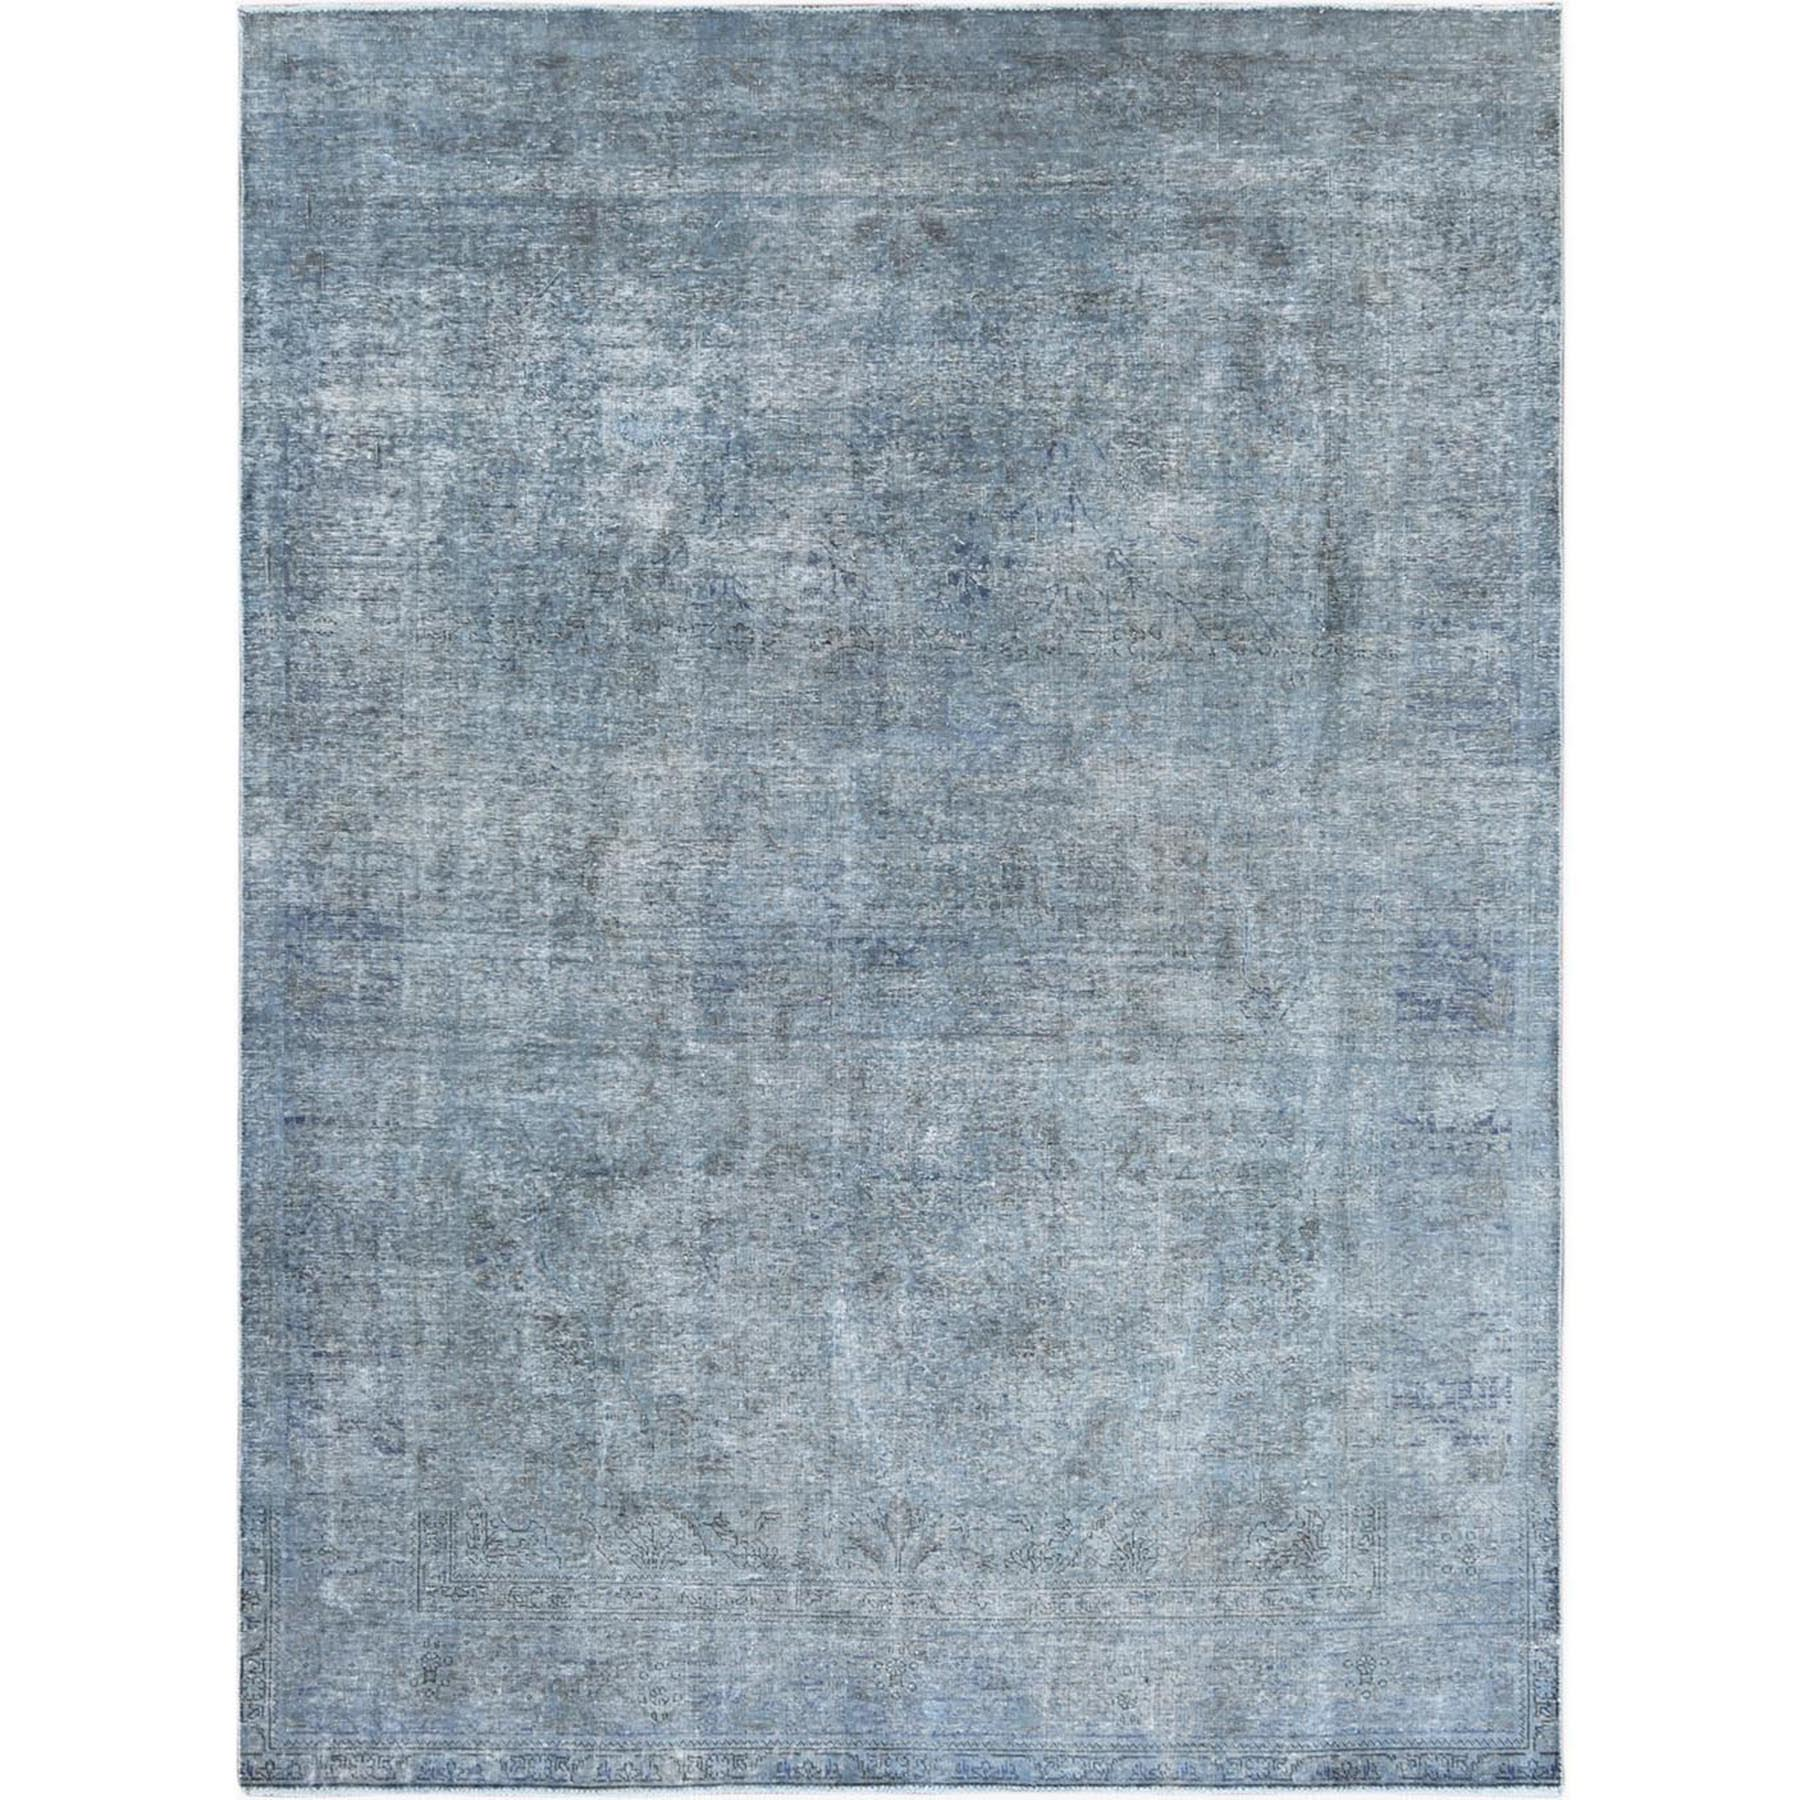 Fetneh Collection And Vintage Overdyed Collection Hand Knotted Grey Rug No: 1122624